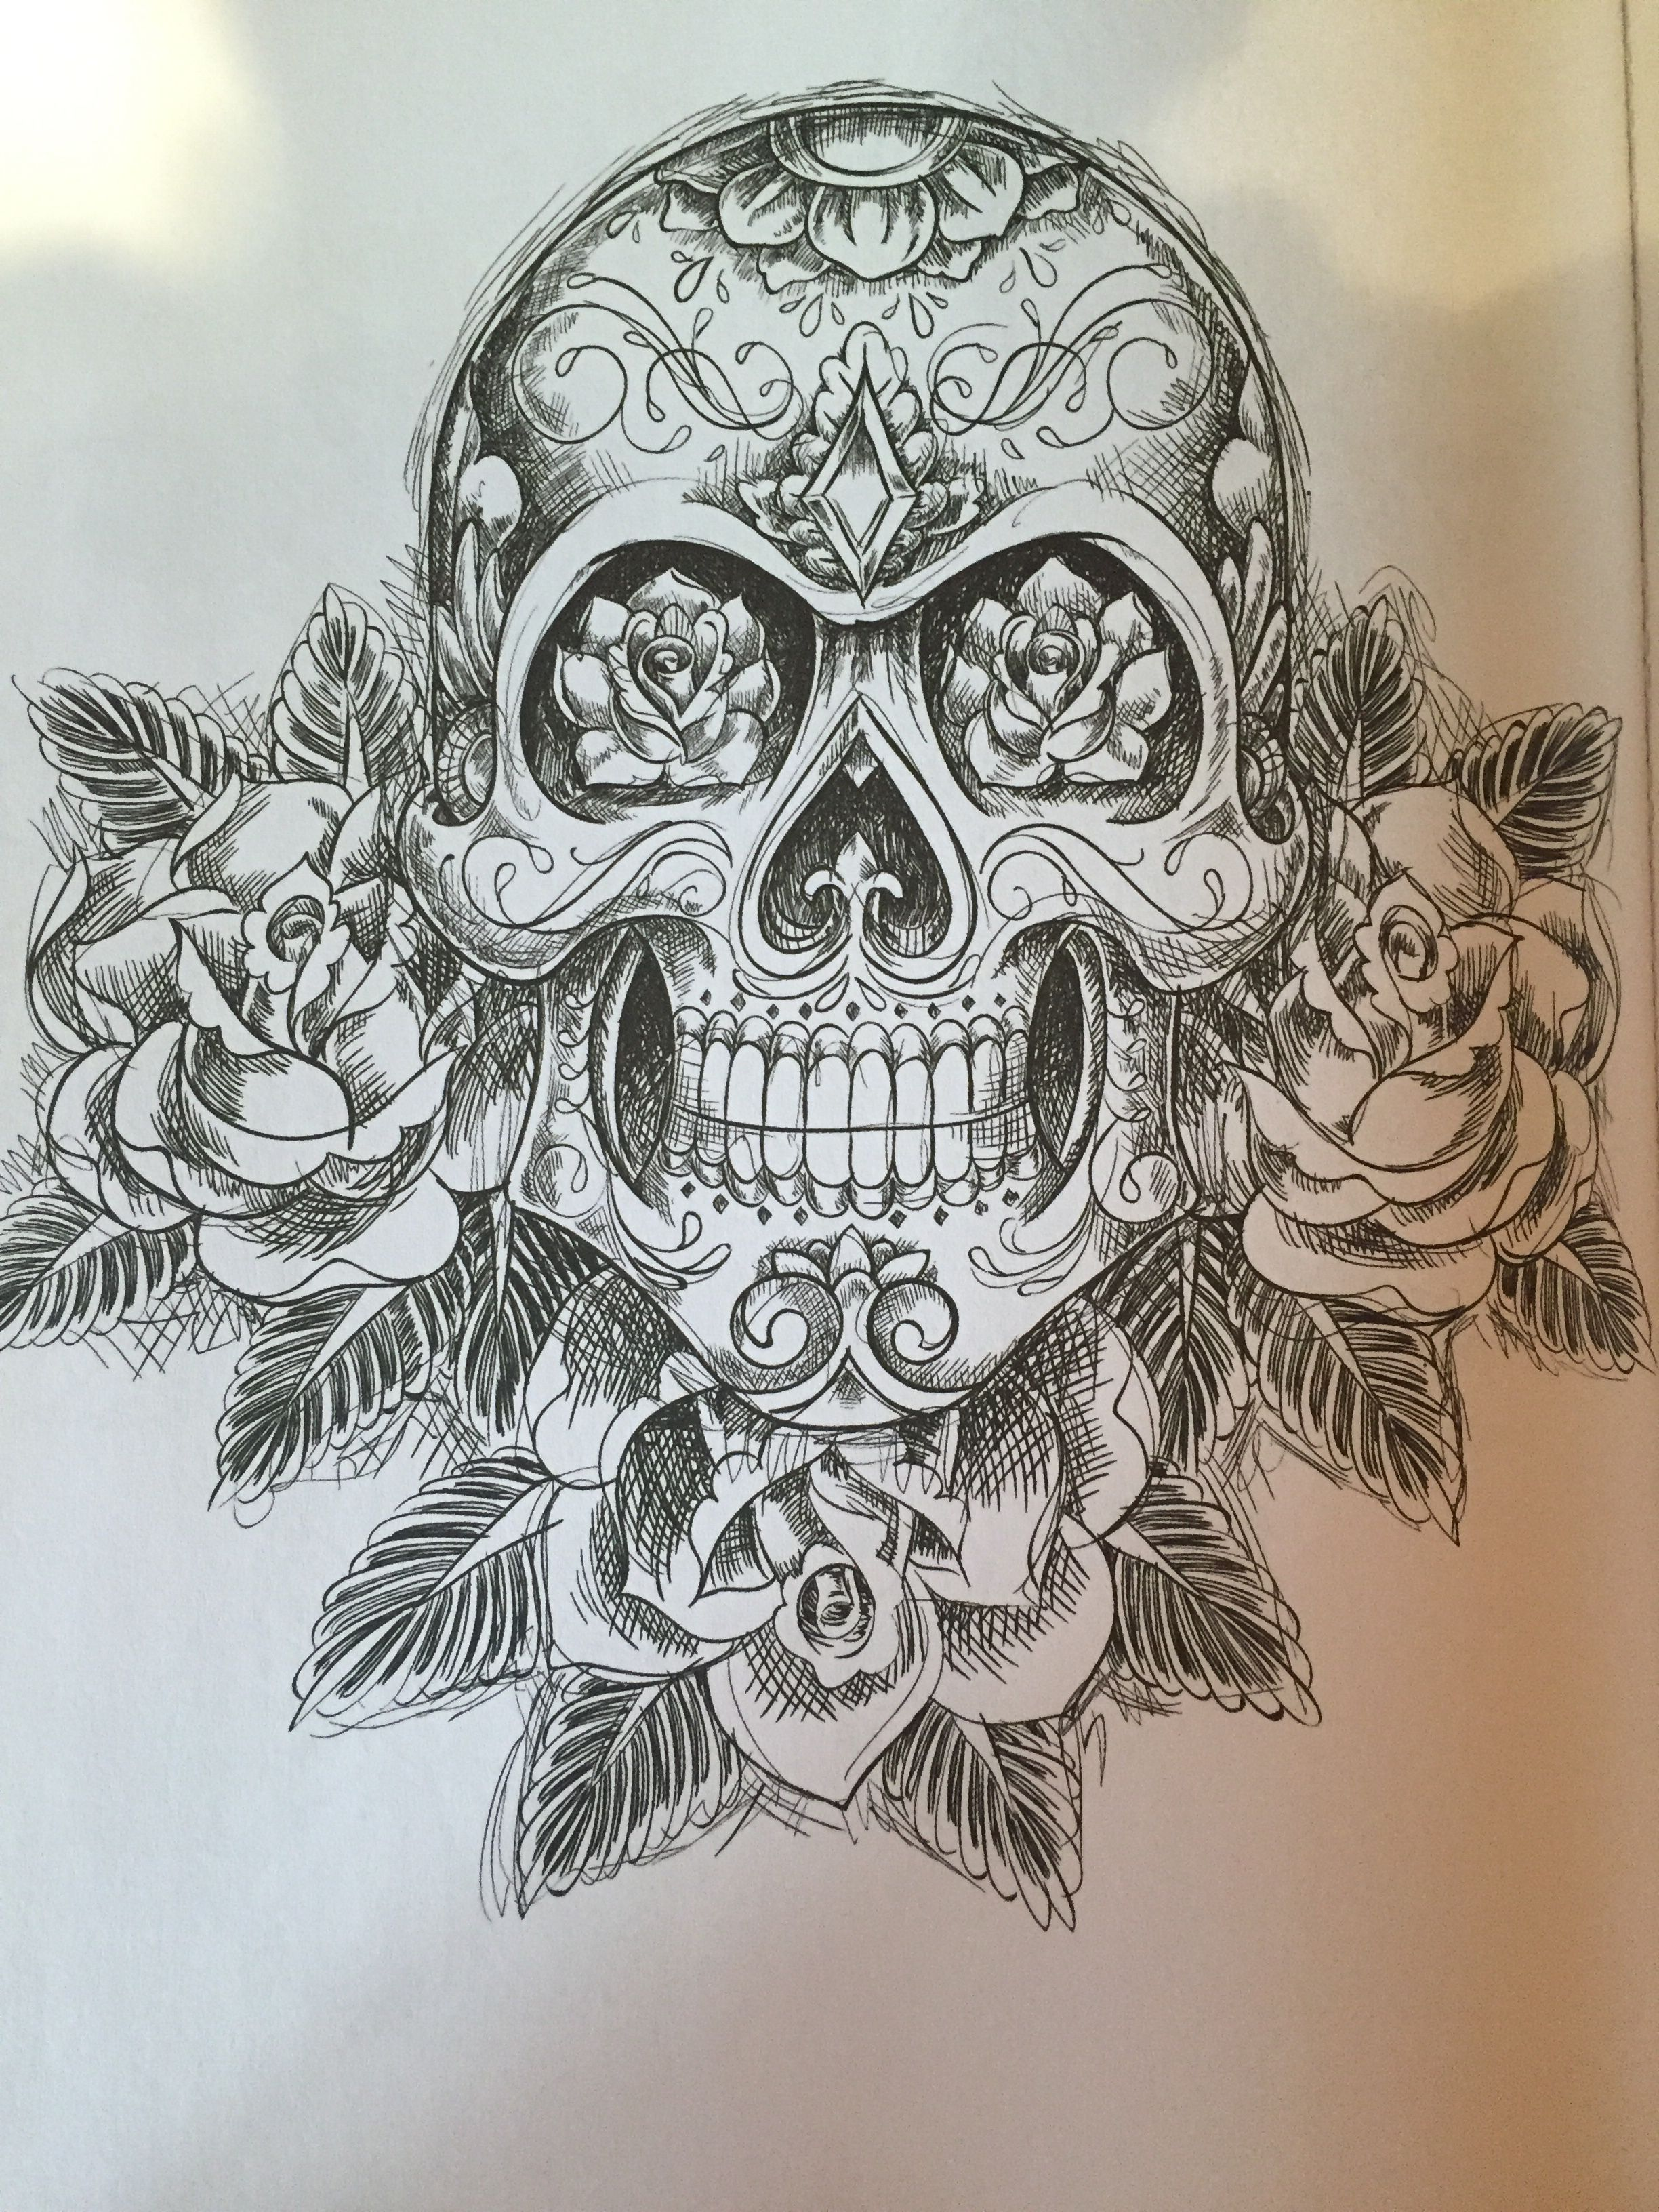 Perfect example of the hip tattoo I want | Tattoos | Pinterest